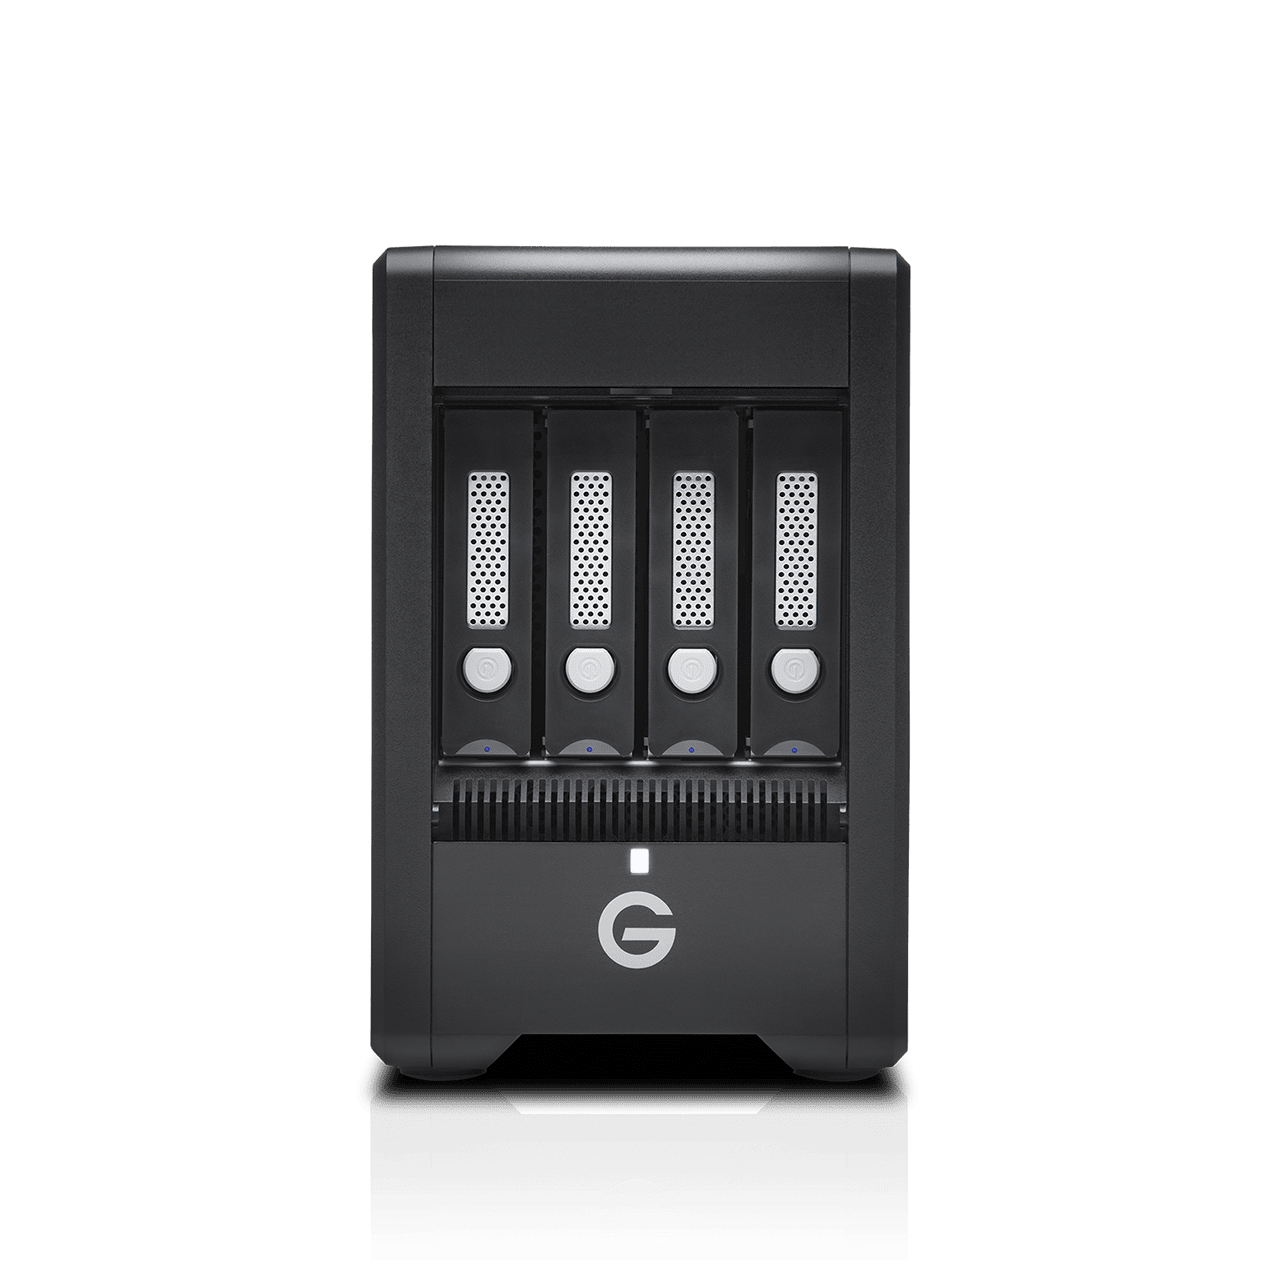 g-speed-shuttle-with-thunderbolt-3-front-opennodoor-png-thumb-1280-1280